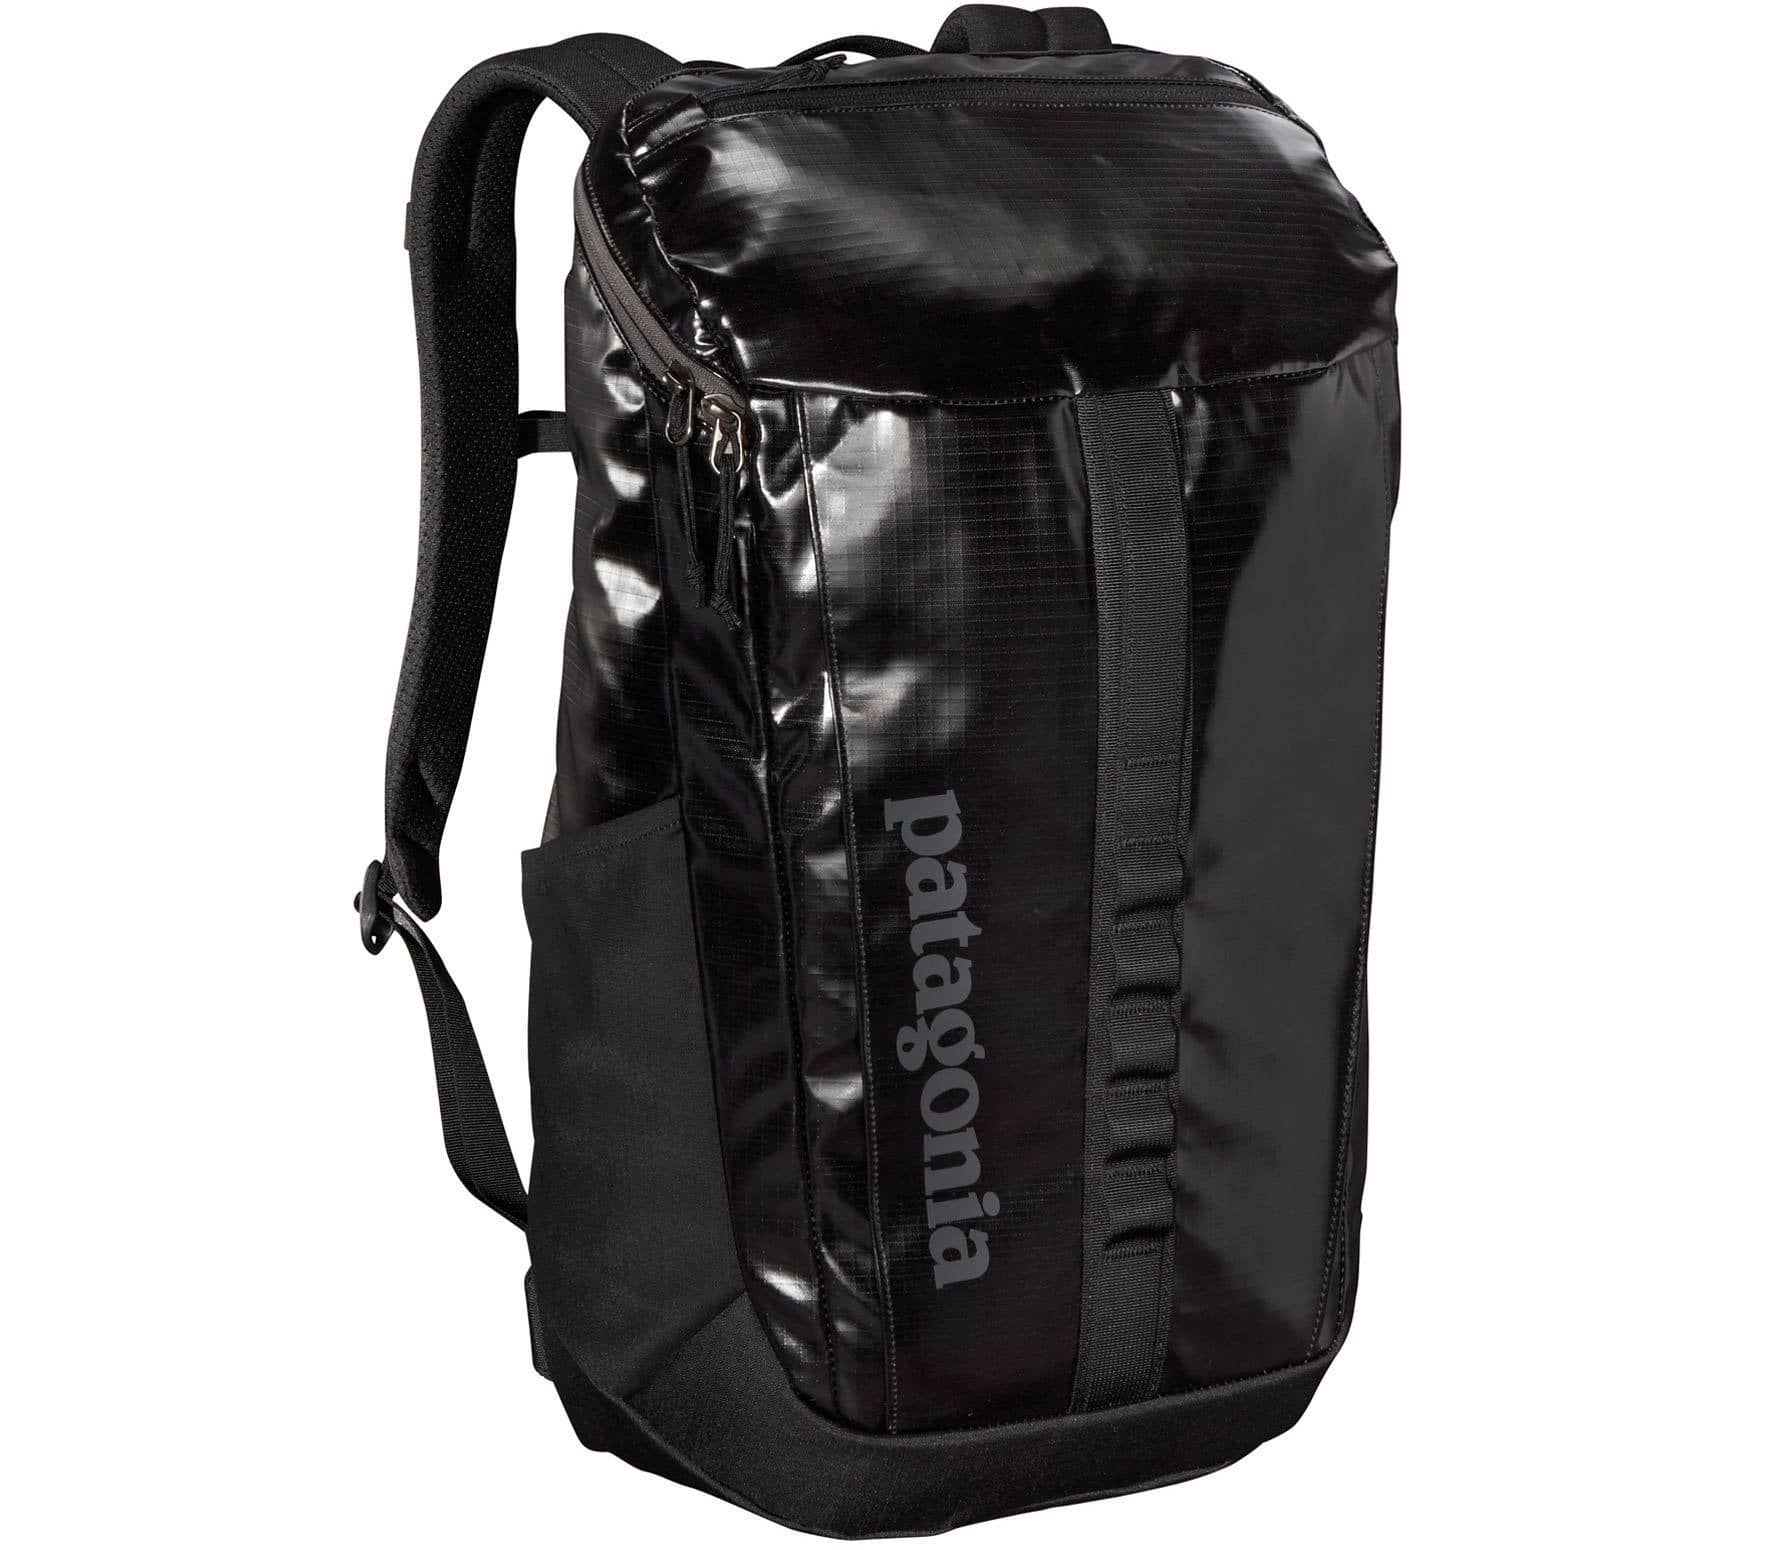 Patagonia - Black Hole daypack - 25L (black)